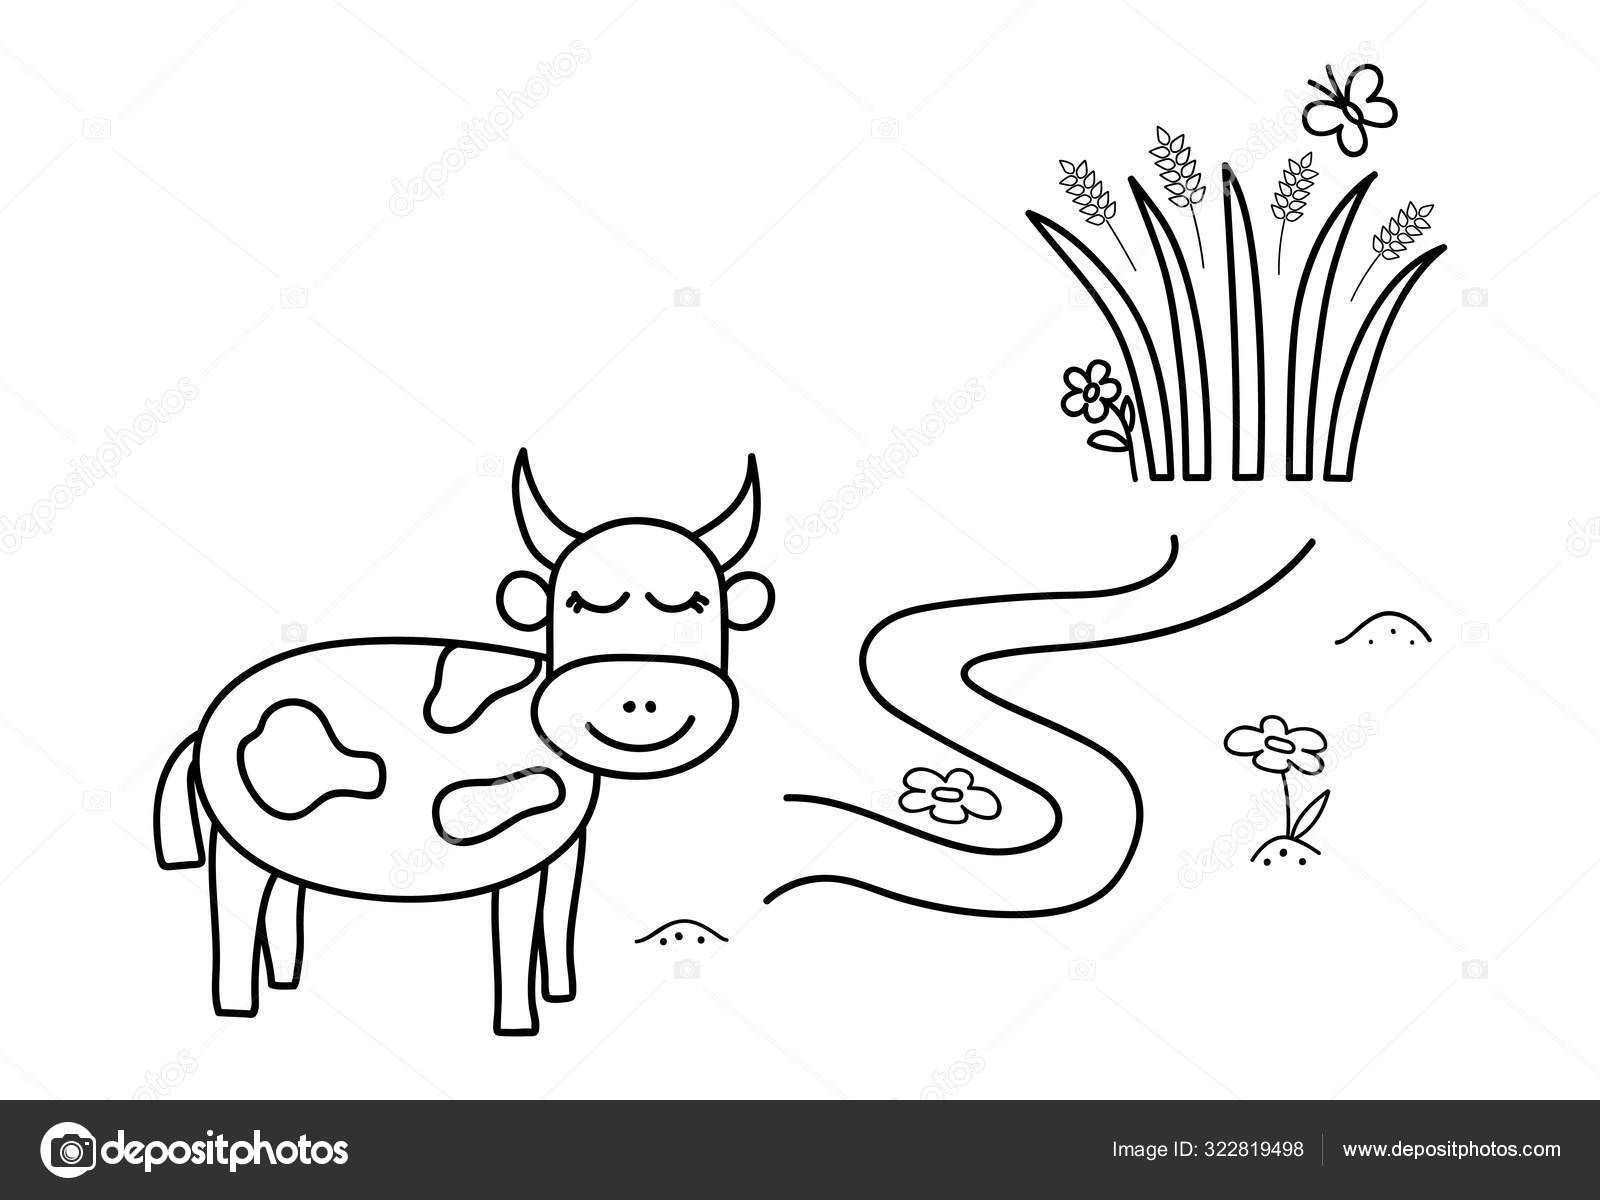 black coloring pages with maze cartoon cow and grass kids education art game template design with pet on white background outline vector stock vector c domira 322819498 https depositphotos com 322819498 stock illustration black coloring pages with maze html